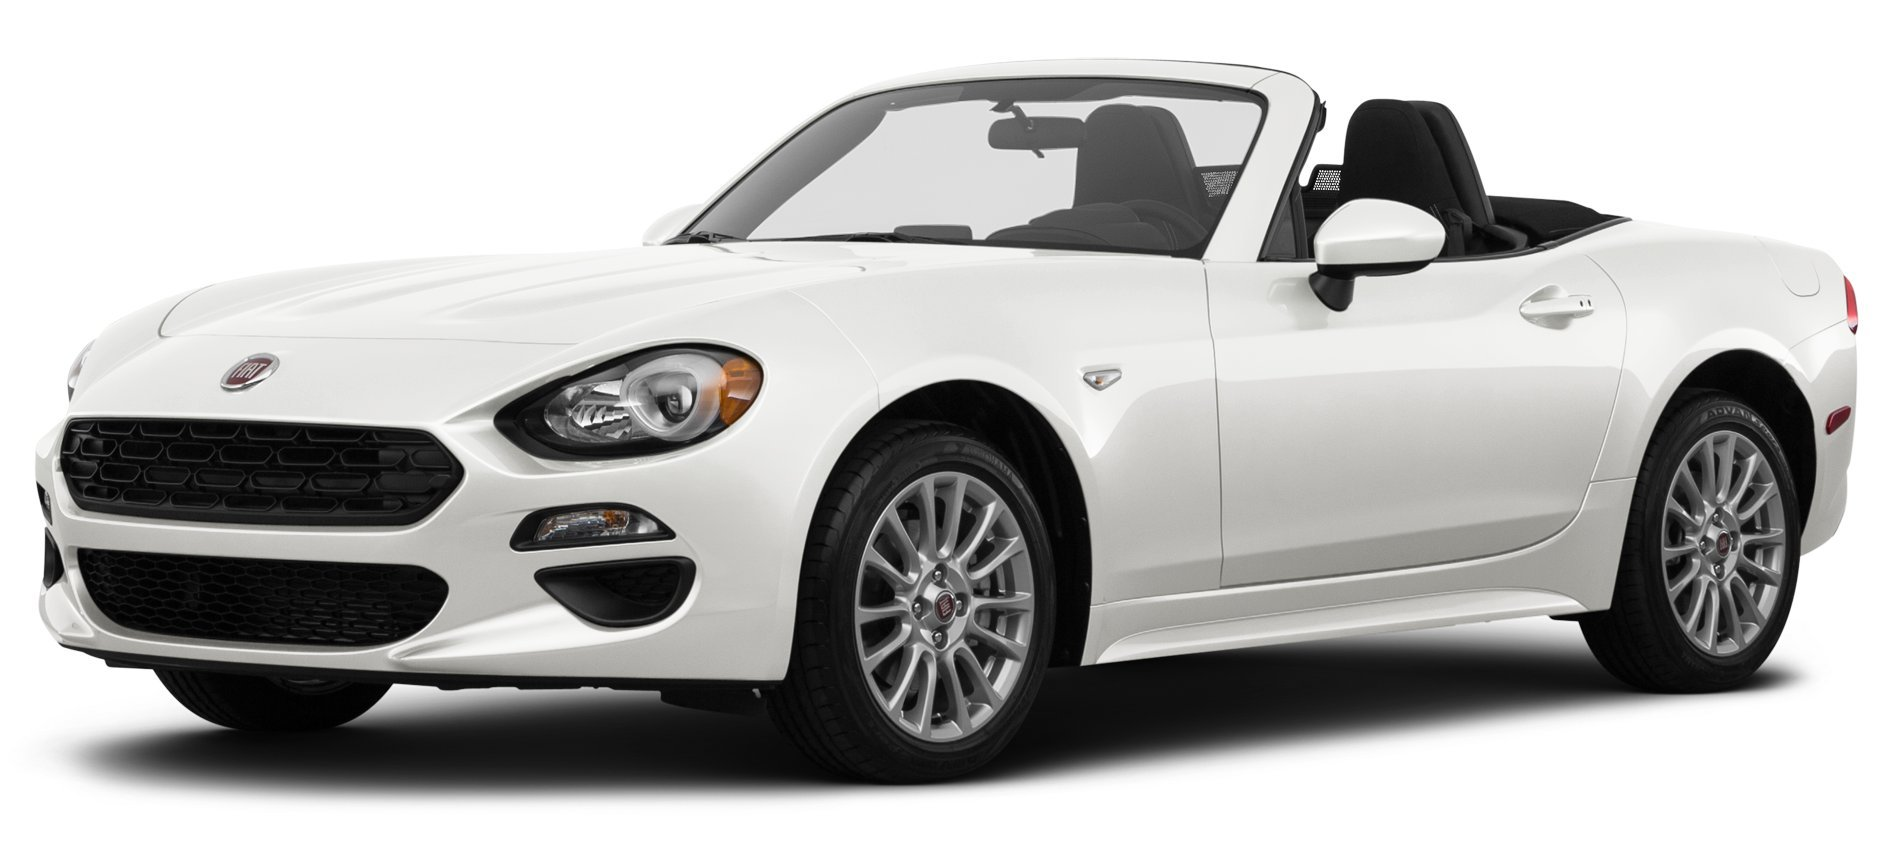 2017 fiat 124 spider reviews images and specs vehicles. Black Bedroom Furniture Sets. Home Design Ideas